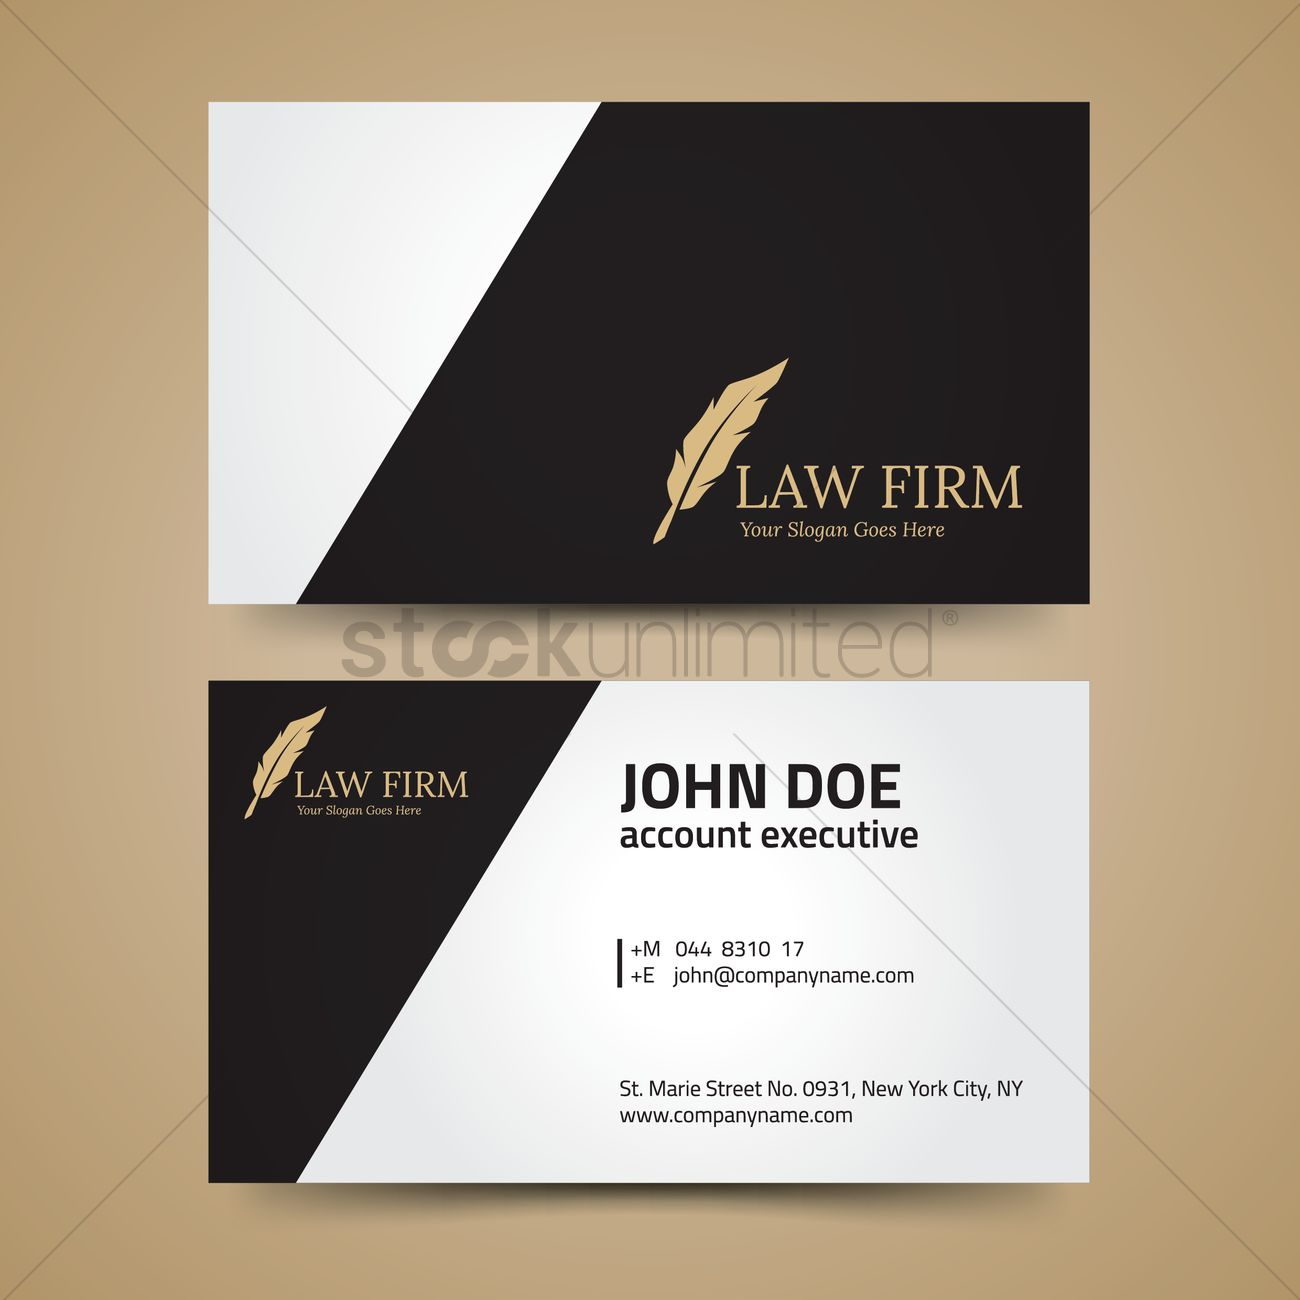 Law firm business card layout vector image 1992561 stockunlimited law firm business card layout vector graphic magicingreecefo Choice Image